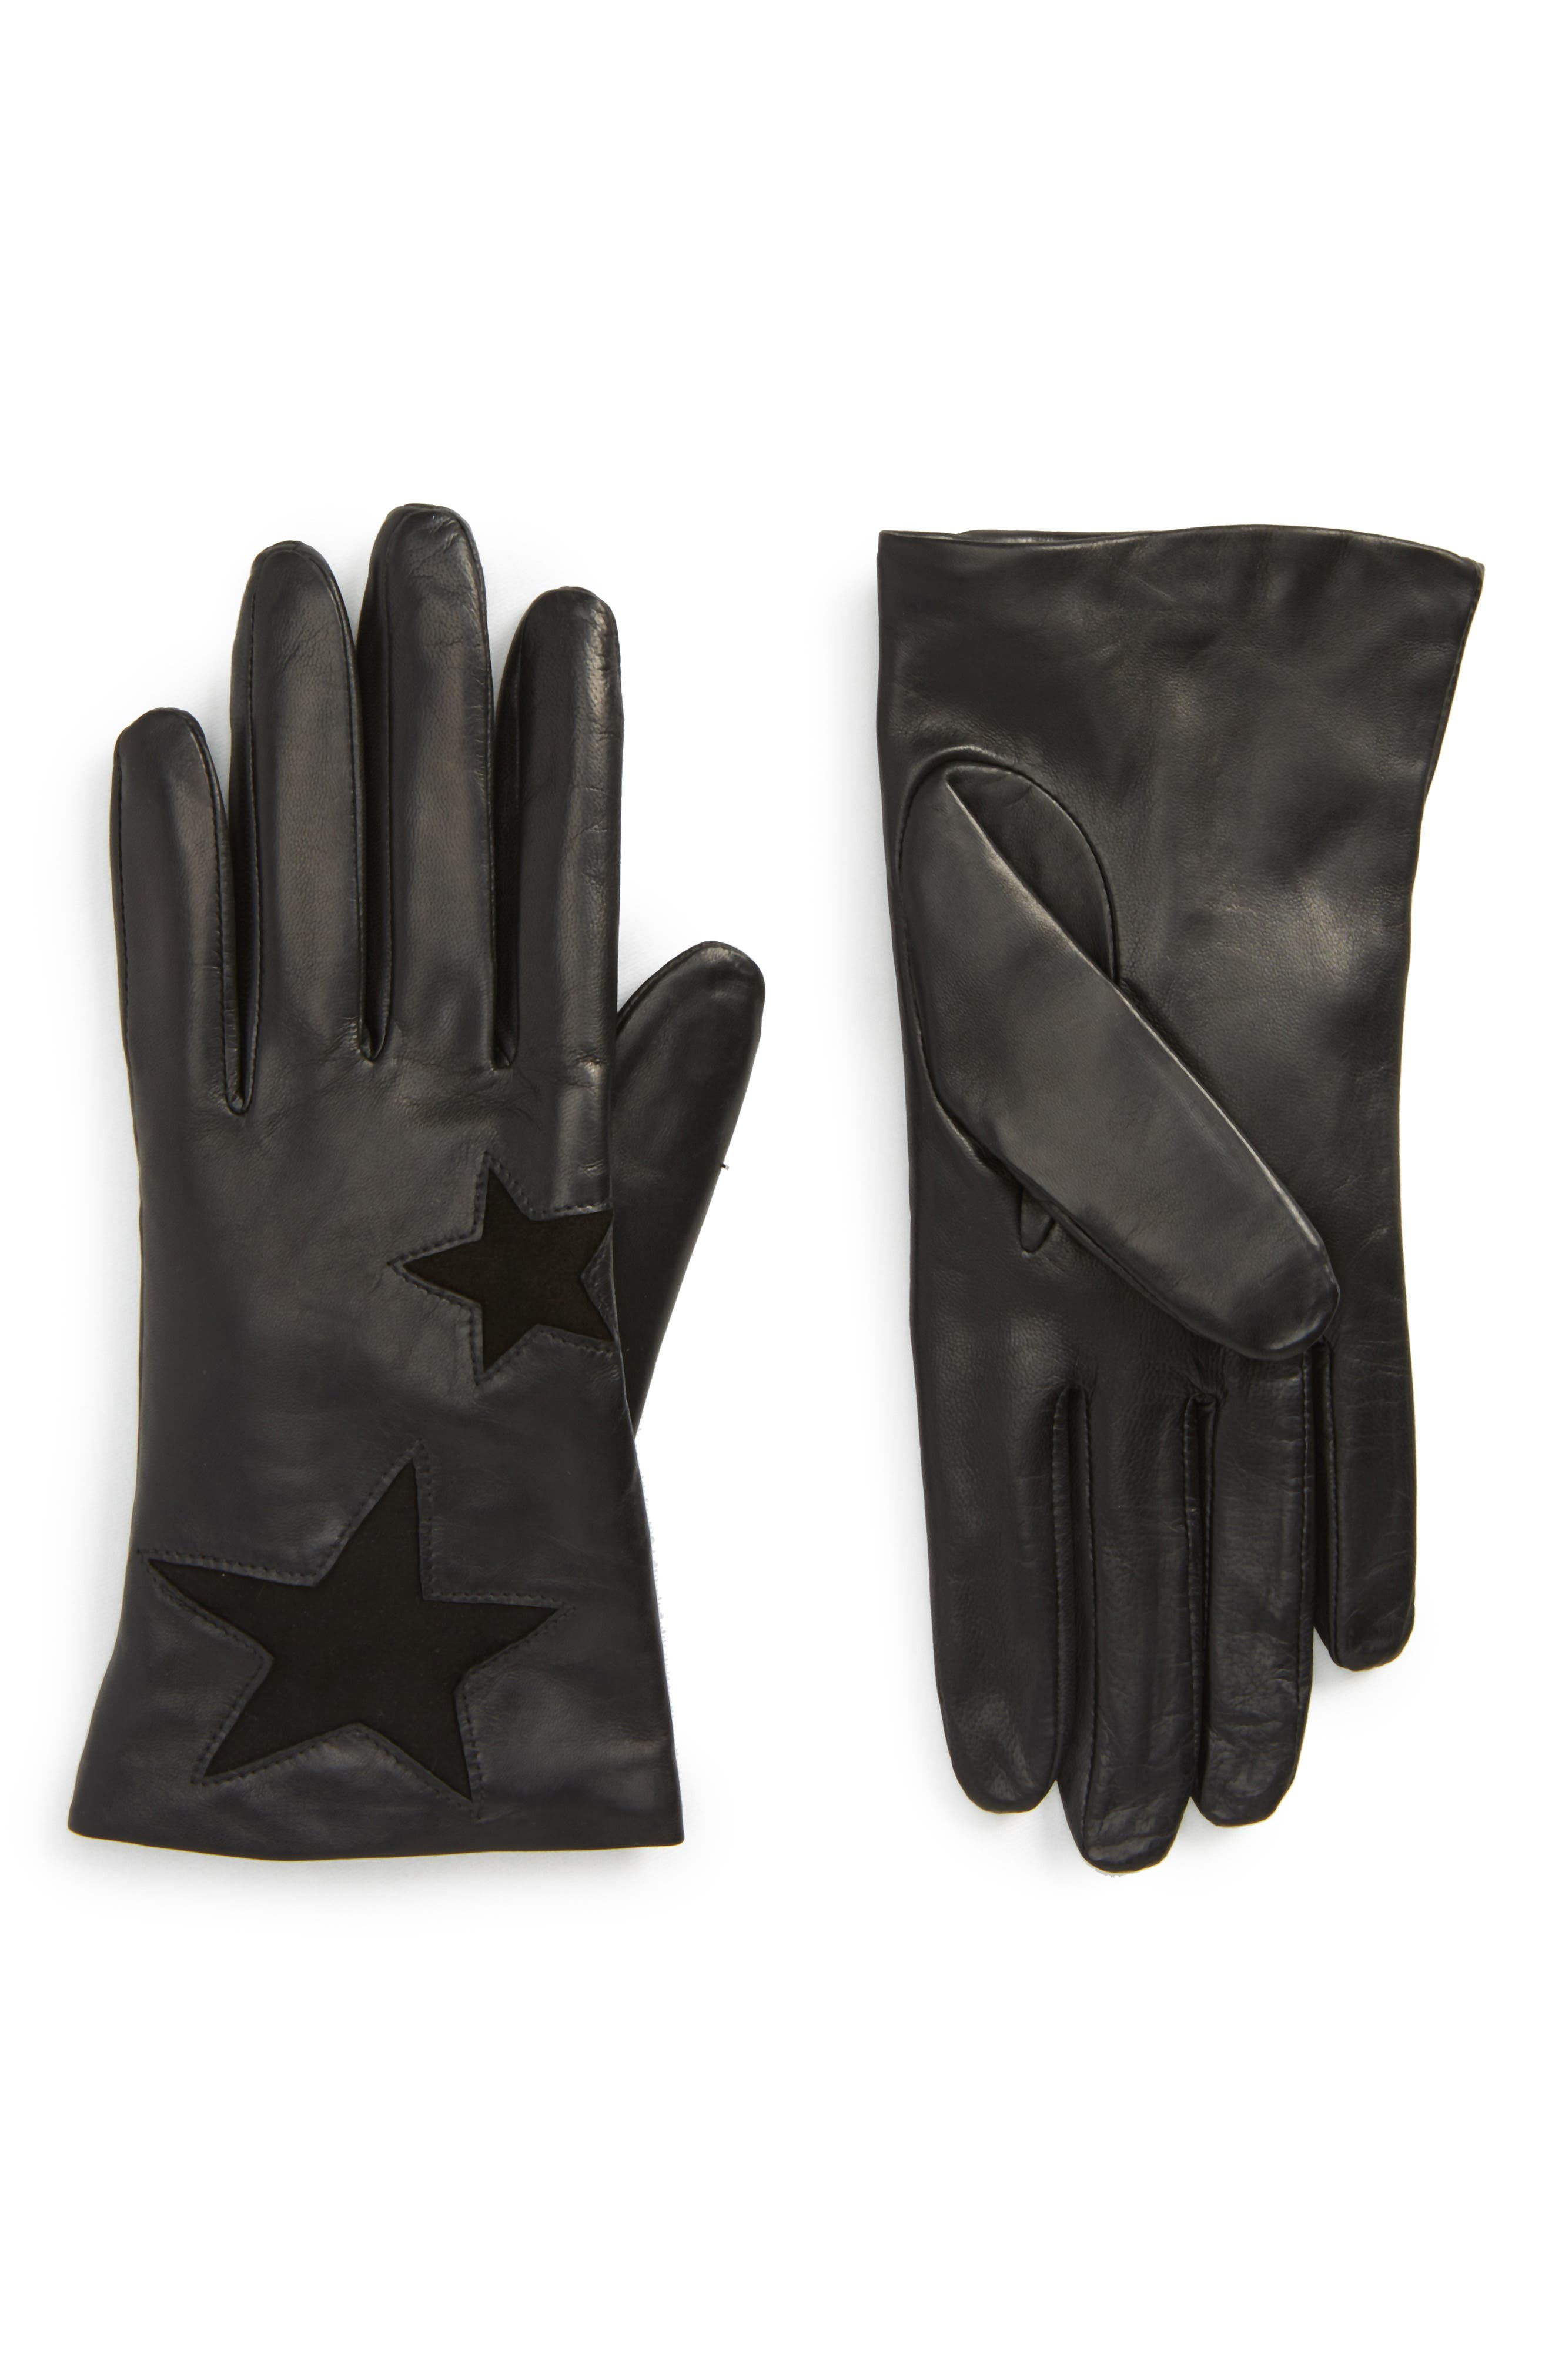 Fownes Brothers Star Leather Gloves